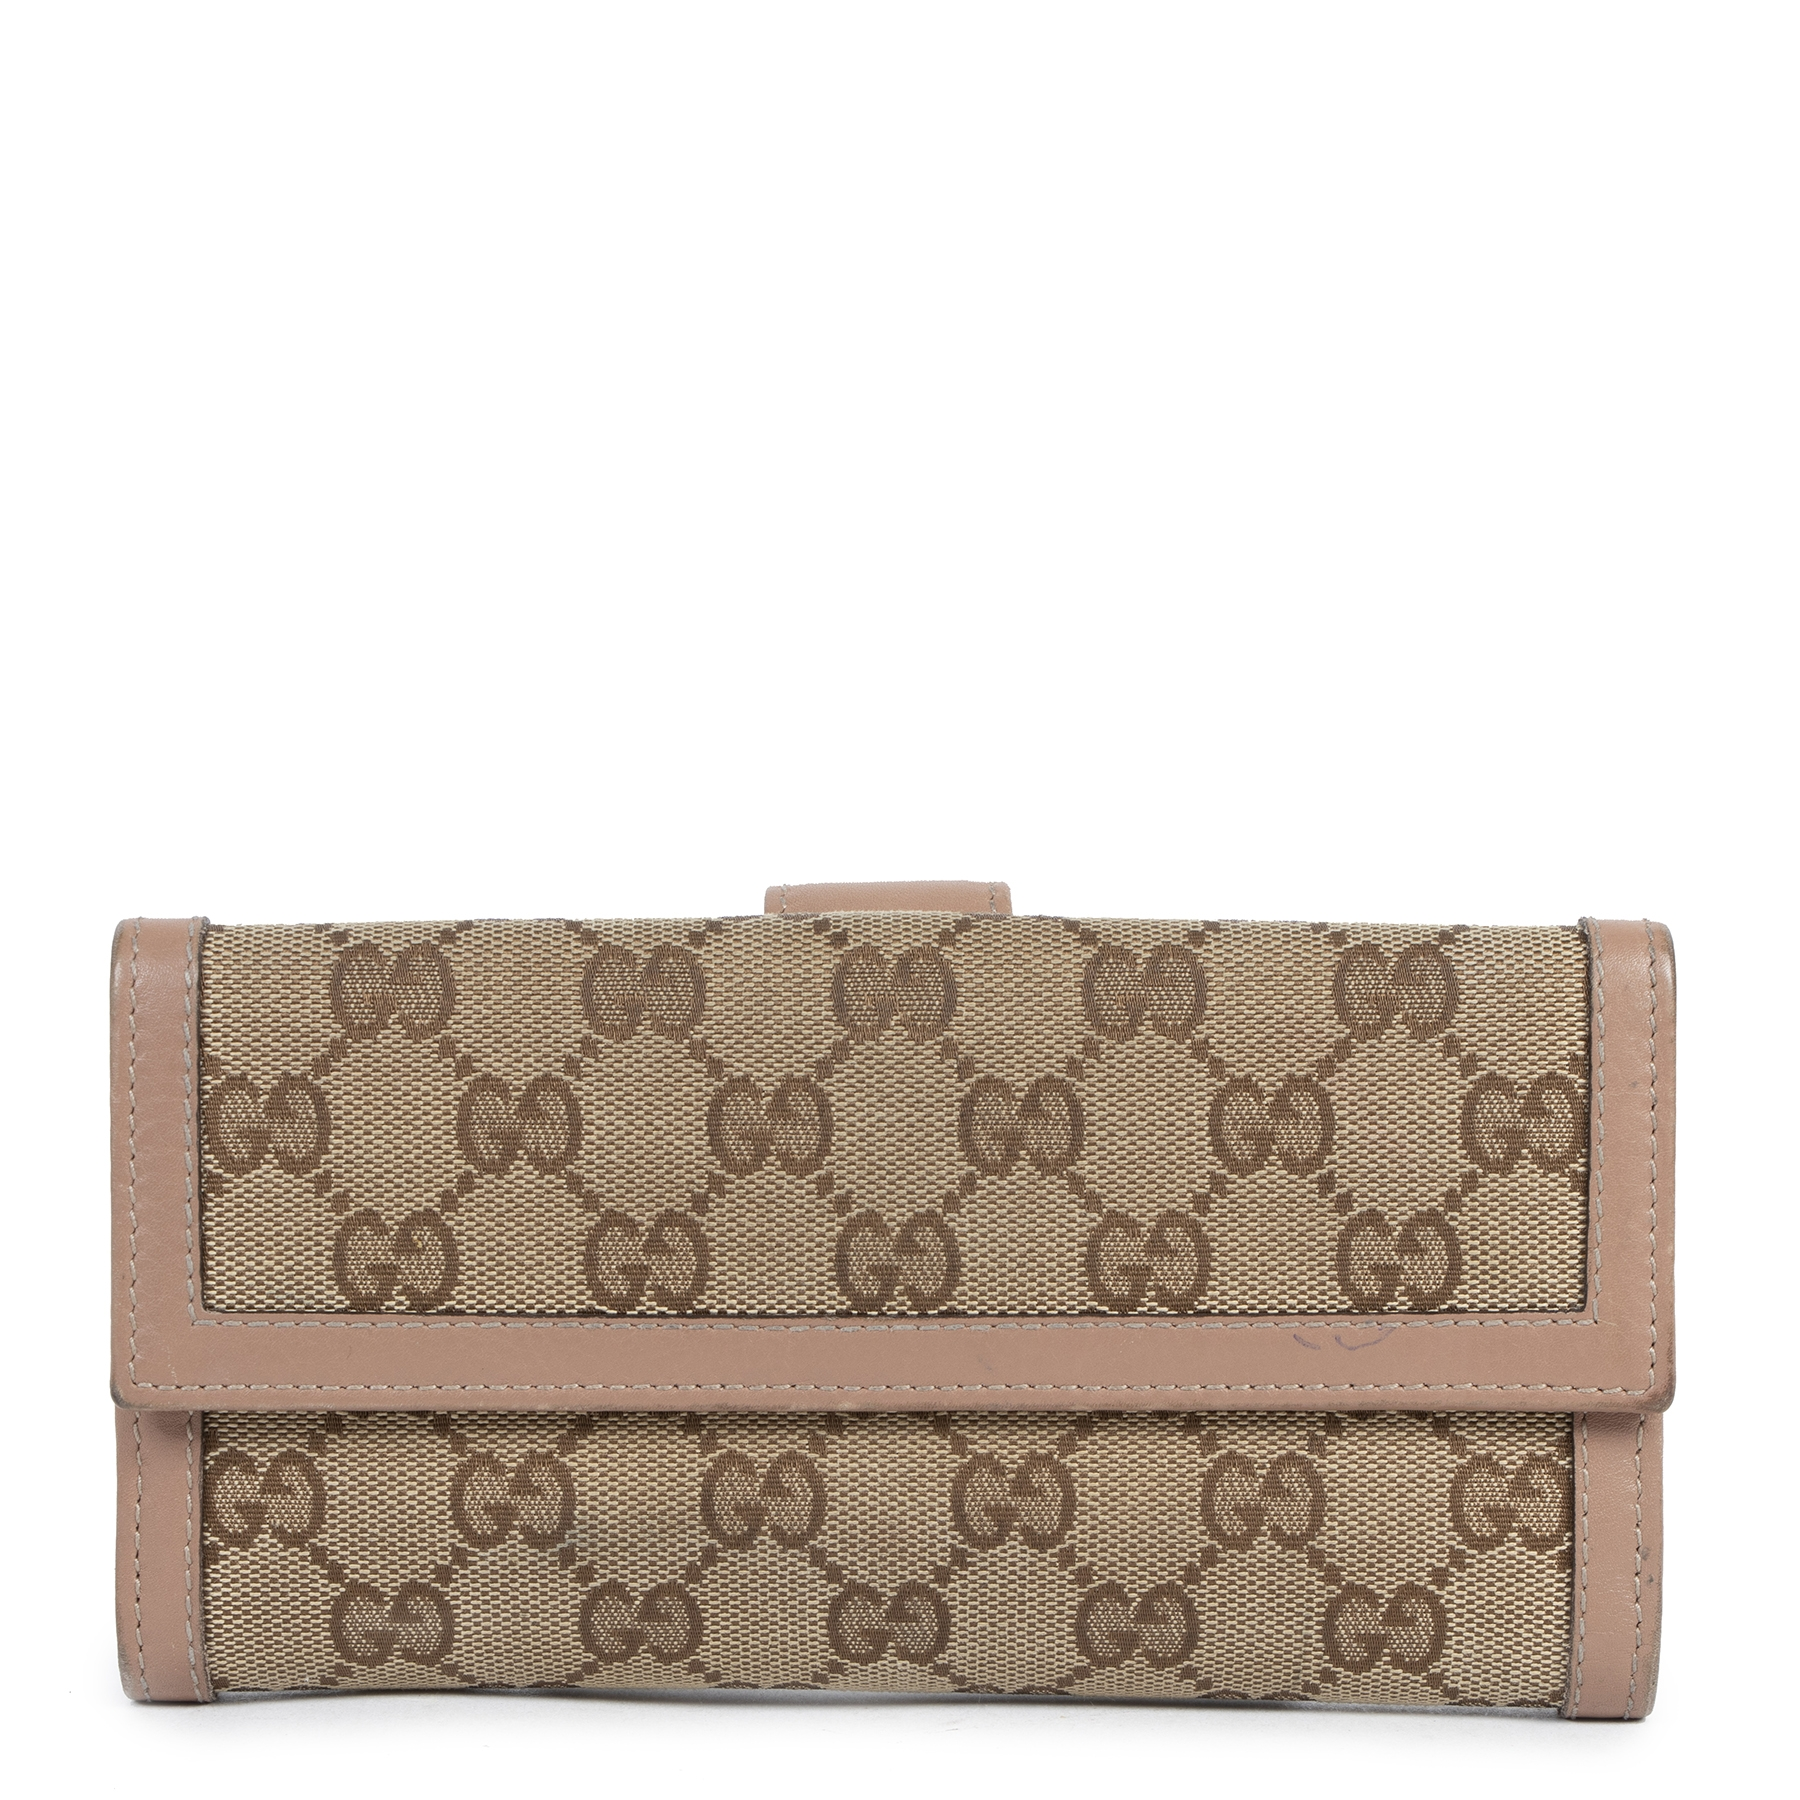 Authentic secondhand Gucci Monogram Canvas Dusty Pink Wallet designer accessories luxury vintage webshop fashion safe secure online shopping worldwide shipping